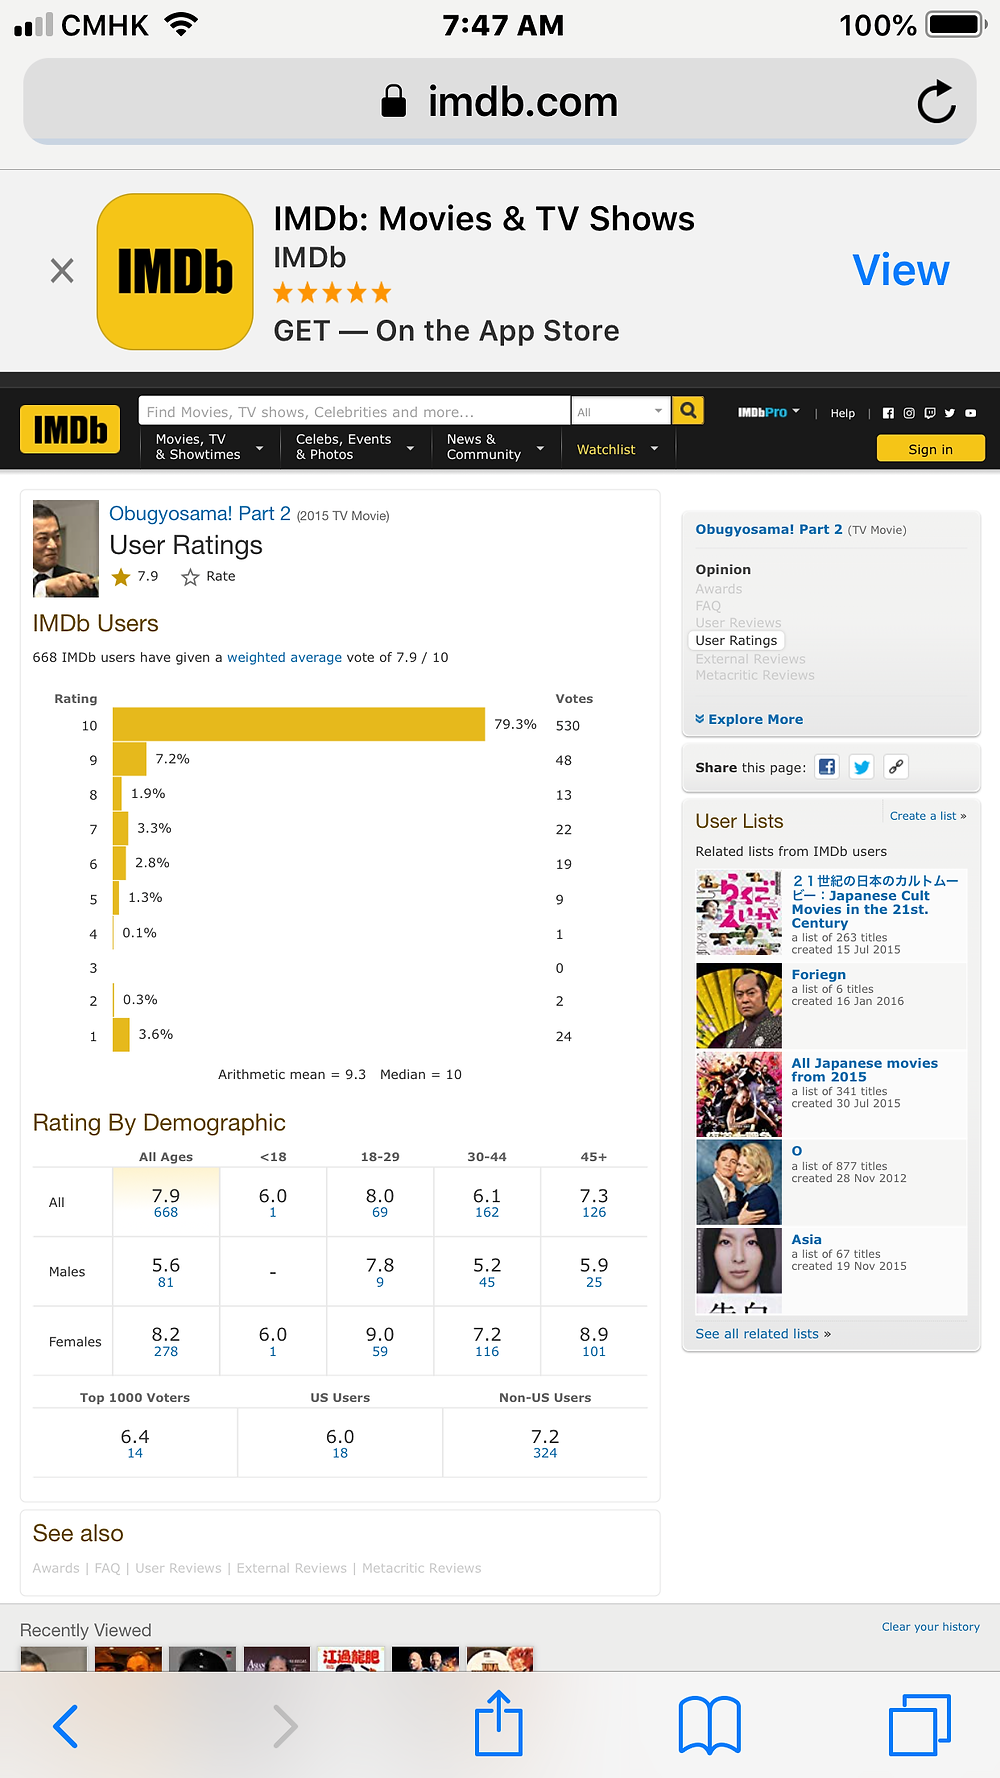 At 7:47 am (China), Aug.13 2019.  668 IMDb users voted 7.9 / 10; Top 1000 users voted 6.4; US users voted 6.0; Non US users voted 7.2.